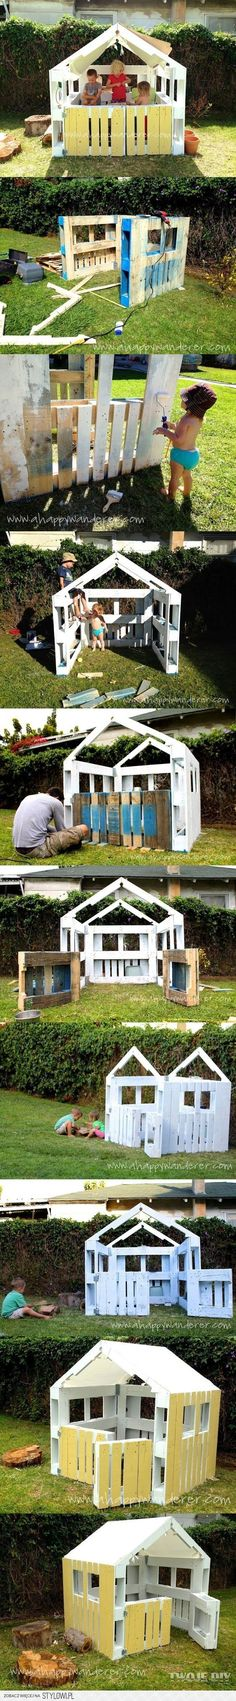 Ted's Woodworking Plans - c projet cabane pour baby Noé. quand il sera plus grand :-) Get A Lifetime Of Project Ideas & Inspiration! Step By Step Woodworking Plans Outdoor Projects, Pallet Projects, Diy Projects, Project Ideas, Pallet Ideas, Furniture Projects, Kids Furniture, Simple Playhouse, Pallet Playhouse